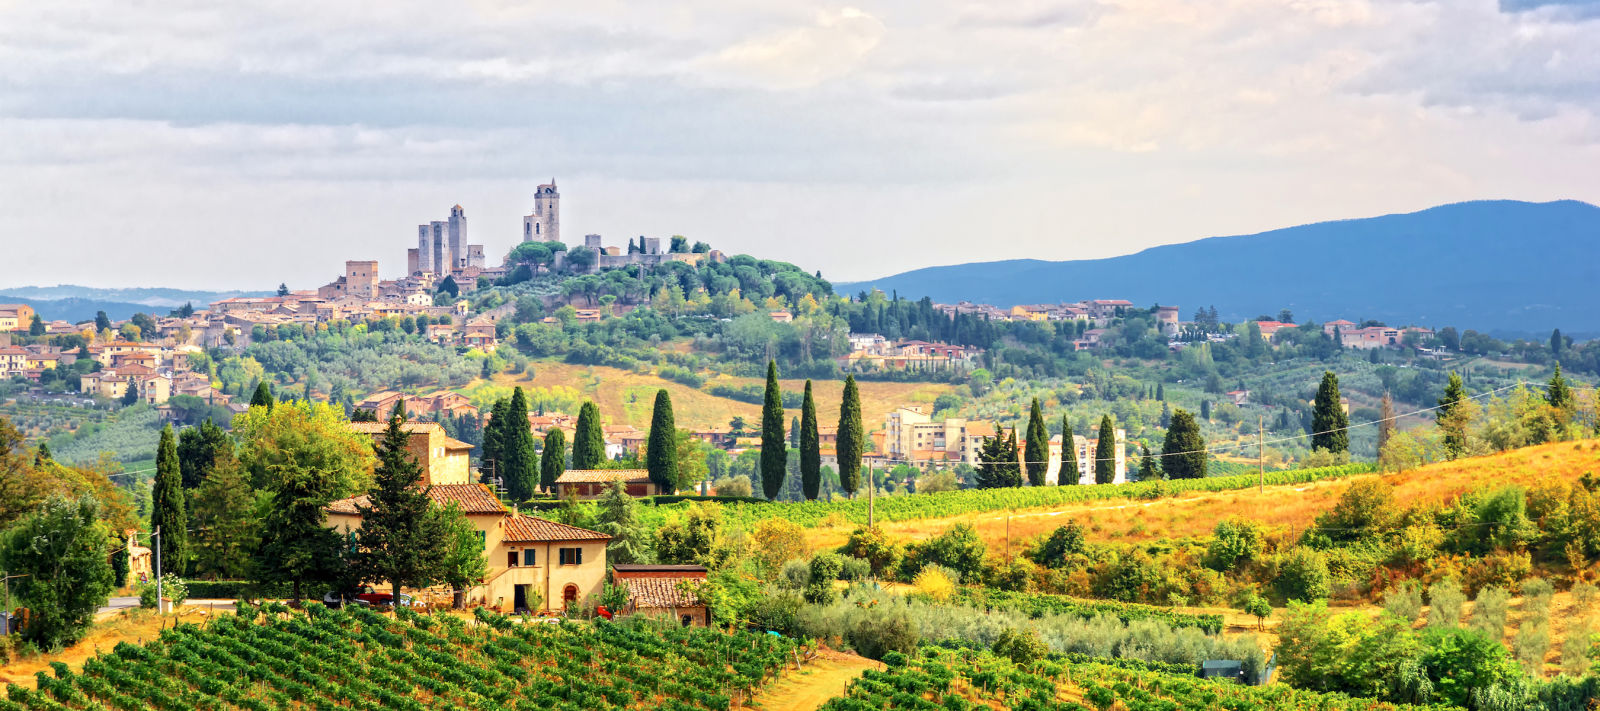 Europe, Italy, Province of Siena